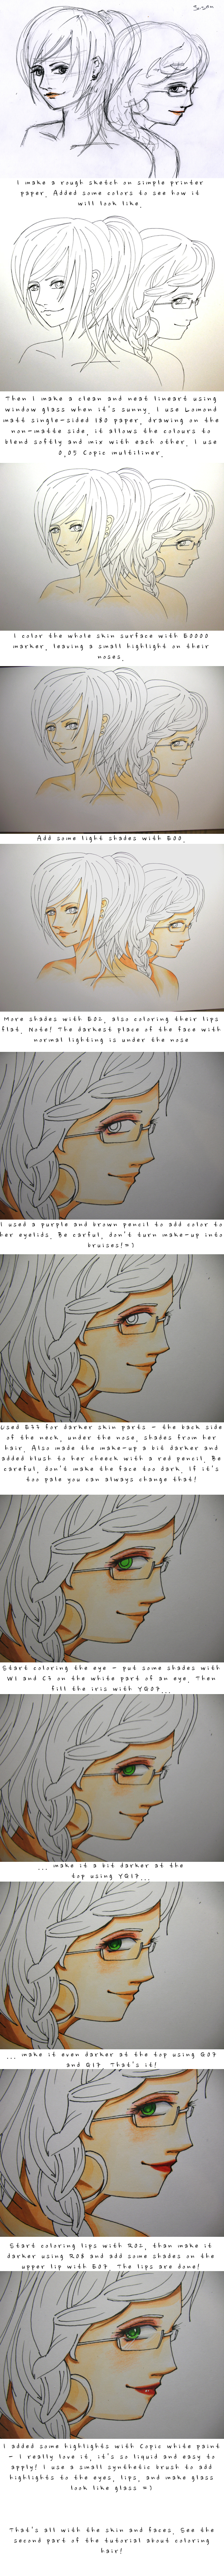 Copic Tutorial, Part 1 by Erin59